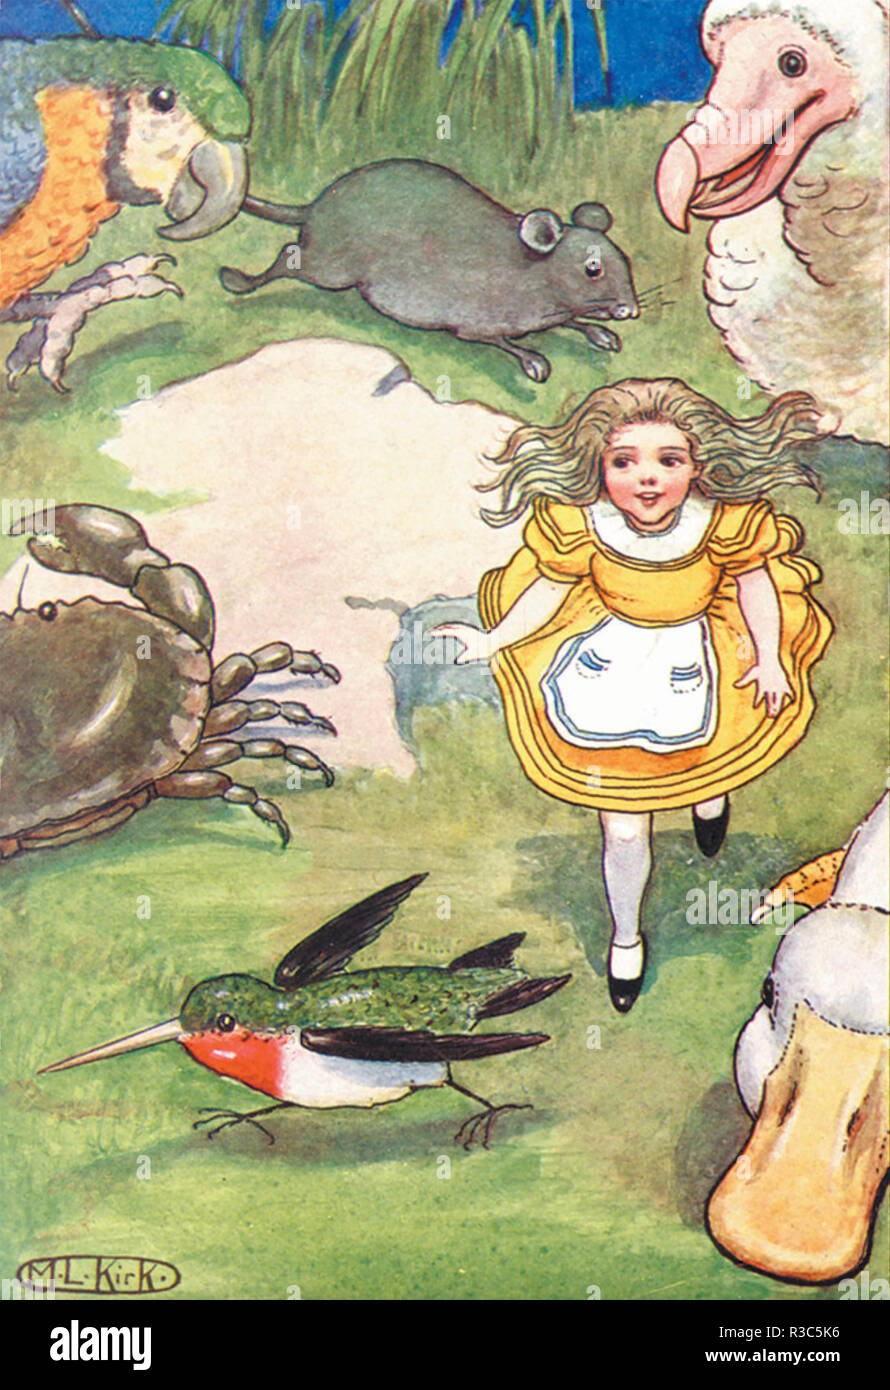 MARIA LOUISE KIRK (1860-1938) American illustrator. Art from her 1904 edition of Alice's Adventures in Wonderland - Stock Image